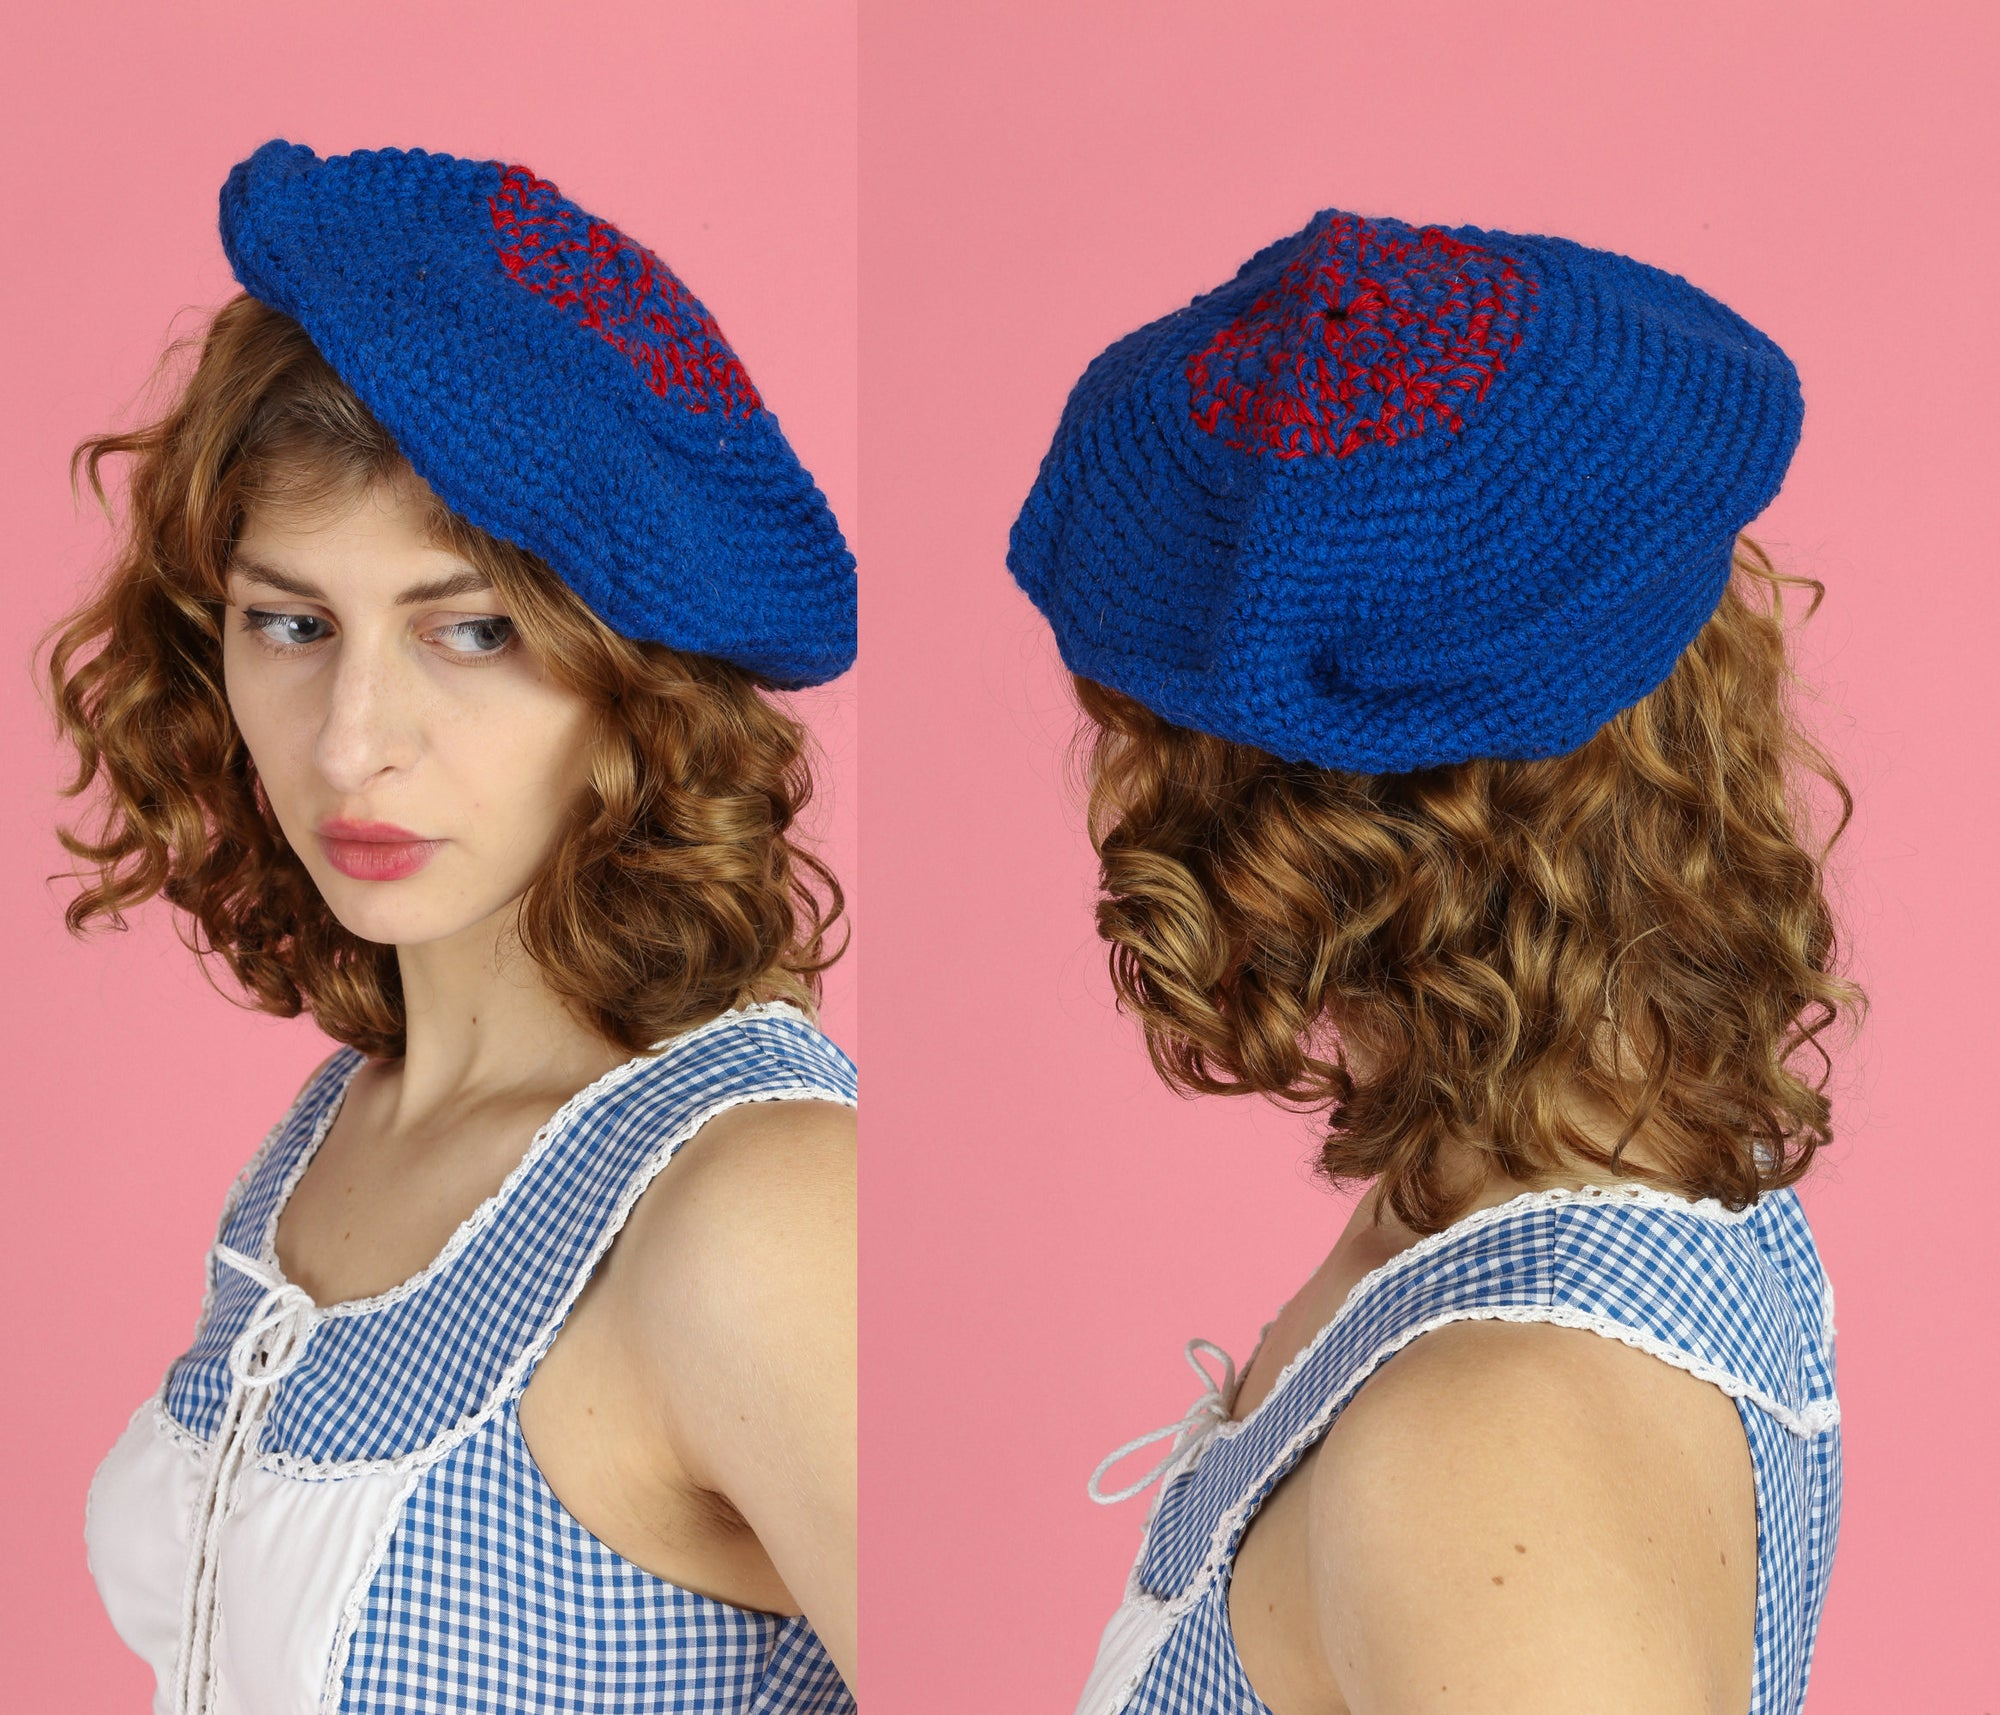 Vintage 70s Blue & Red Knit Beret - One Size